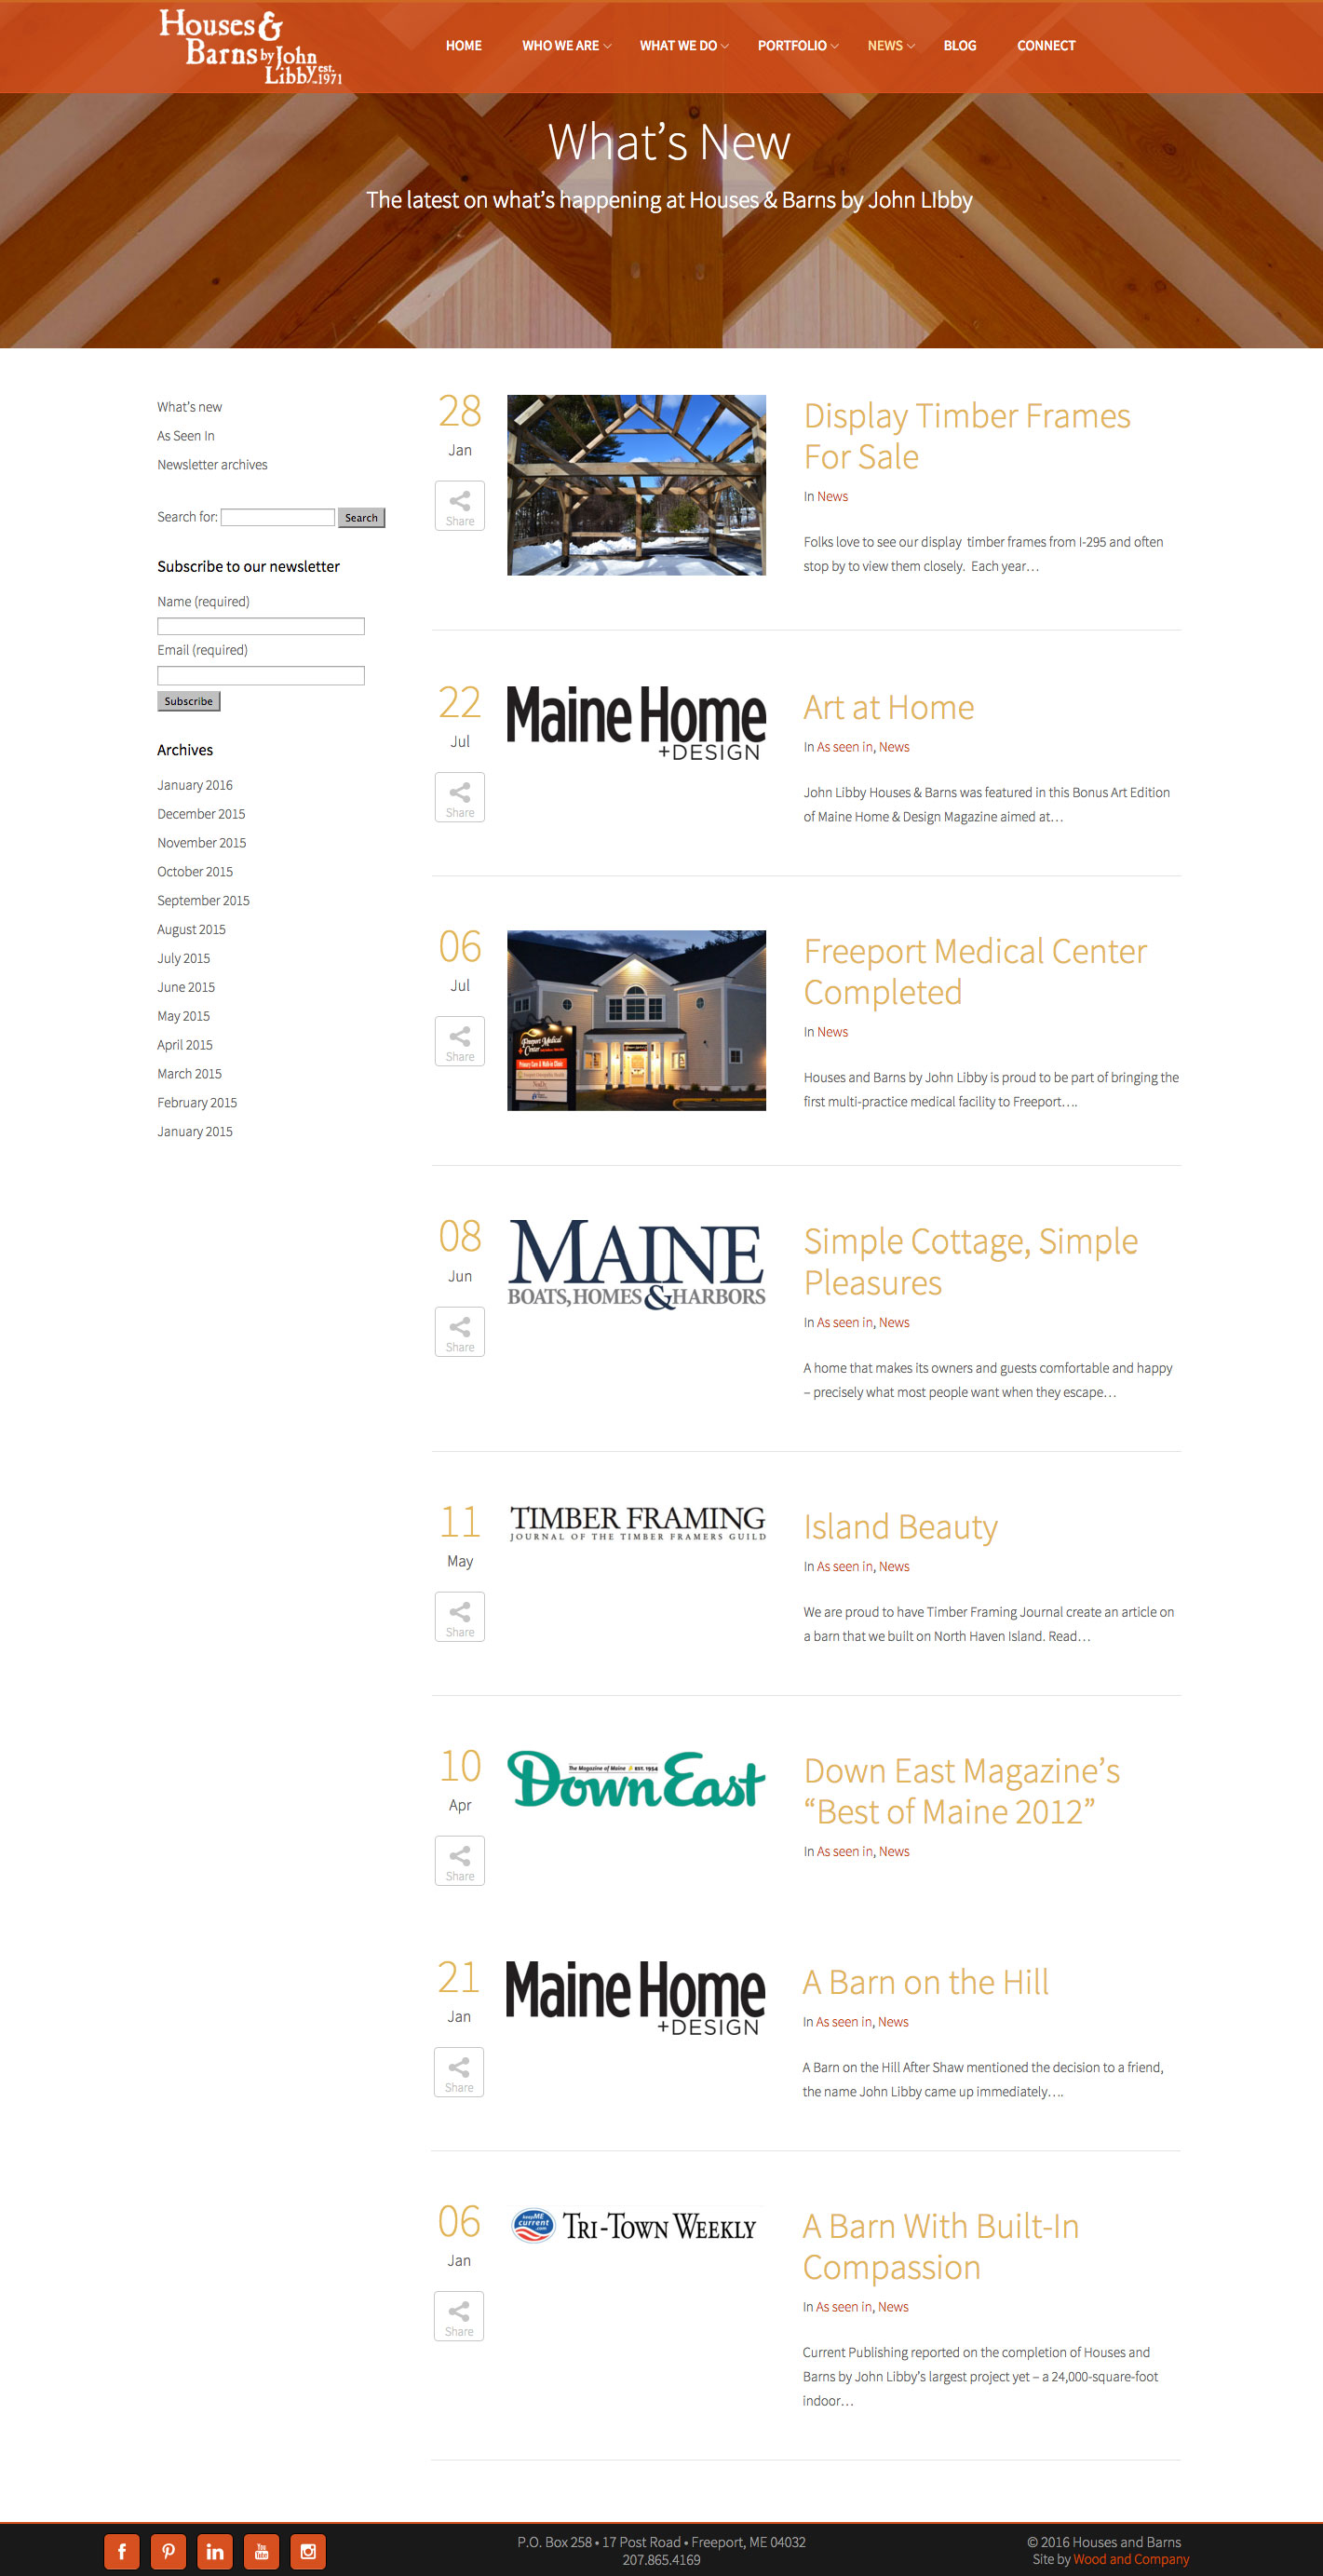 Houses & Barns News Page